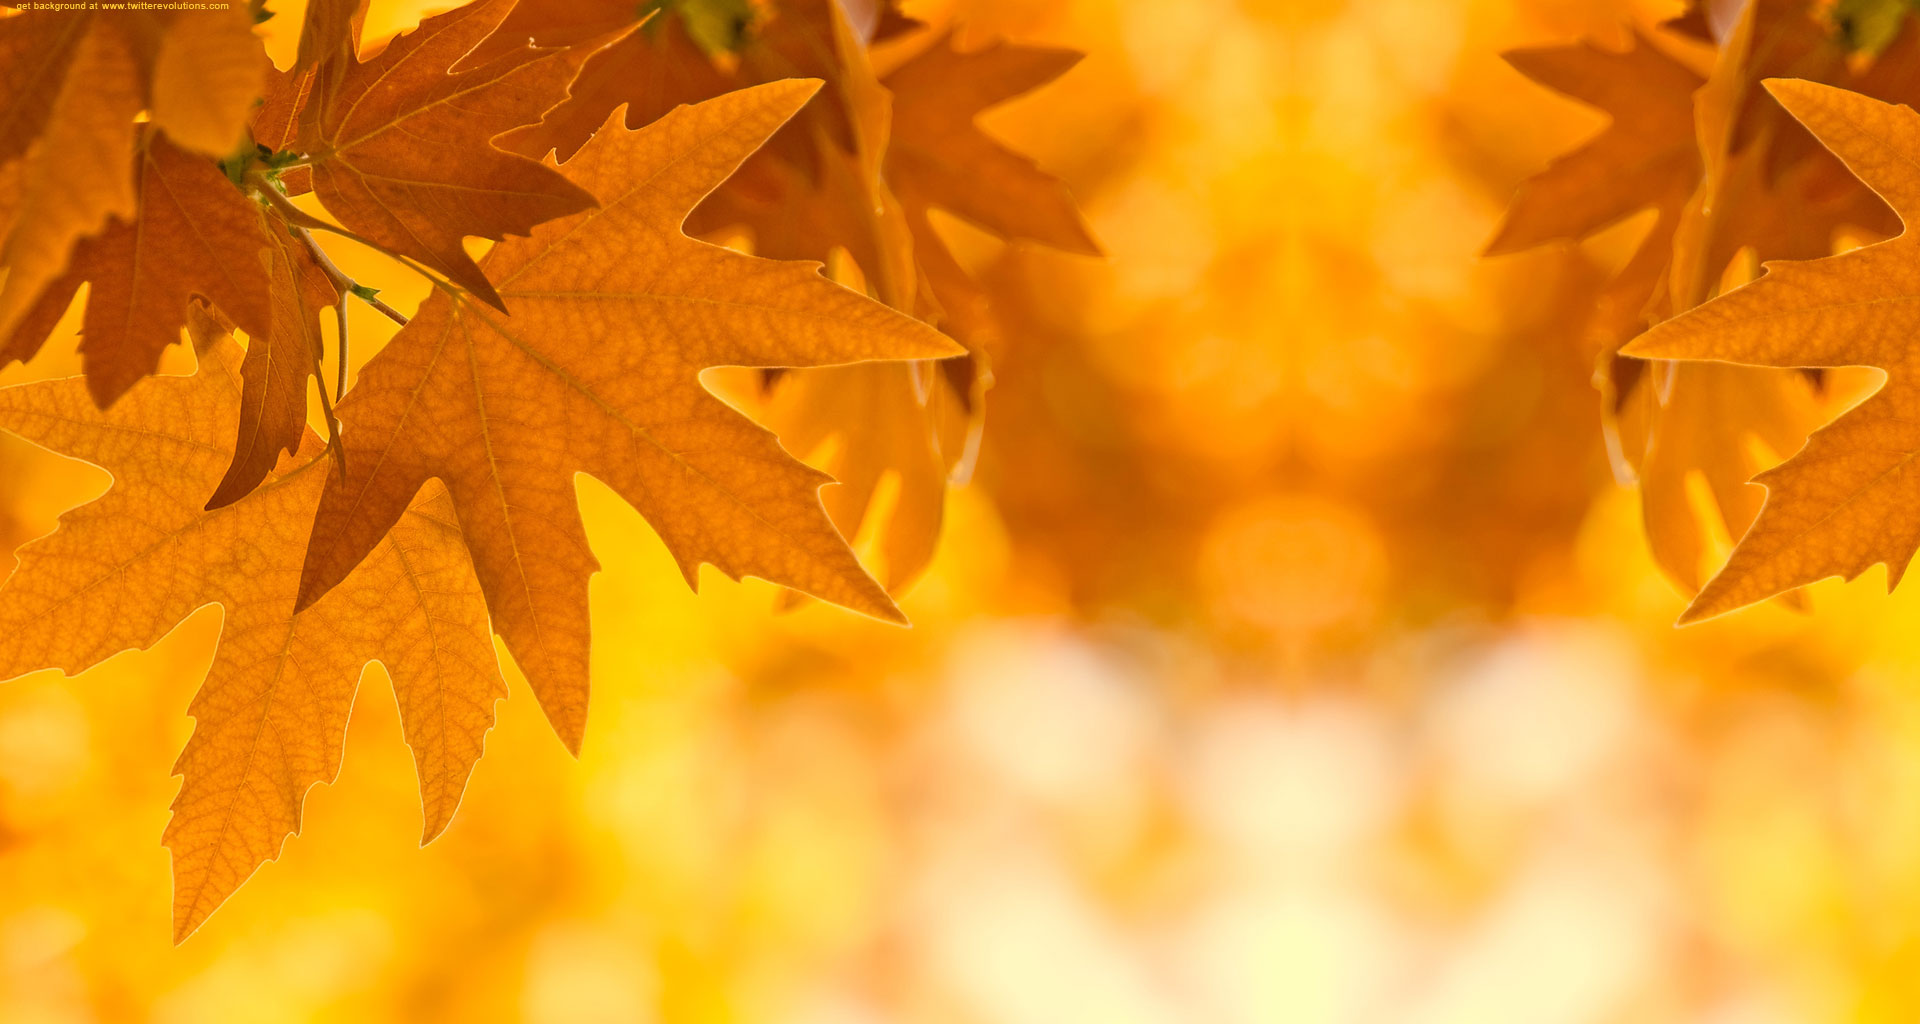 Autumn Leaves Falling   wallpaper 1920x1024